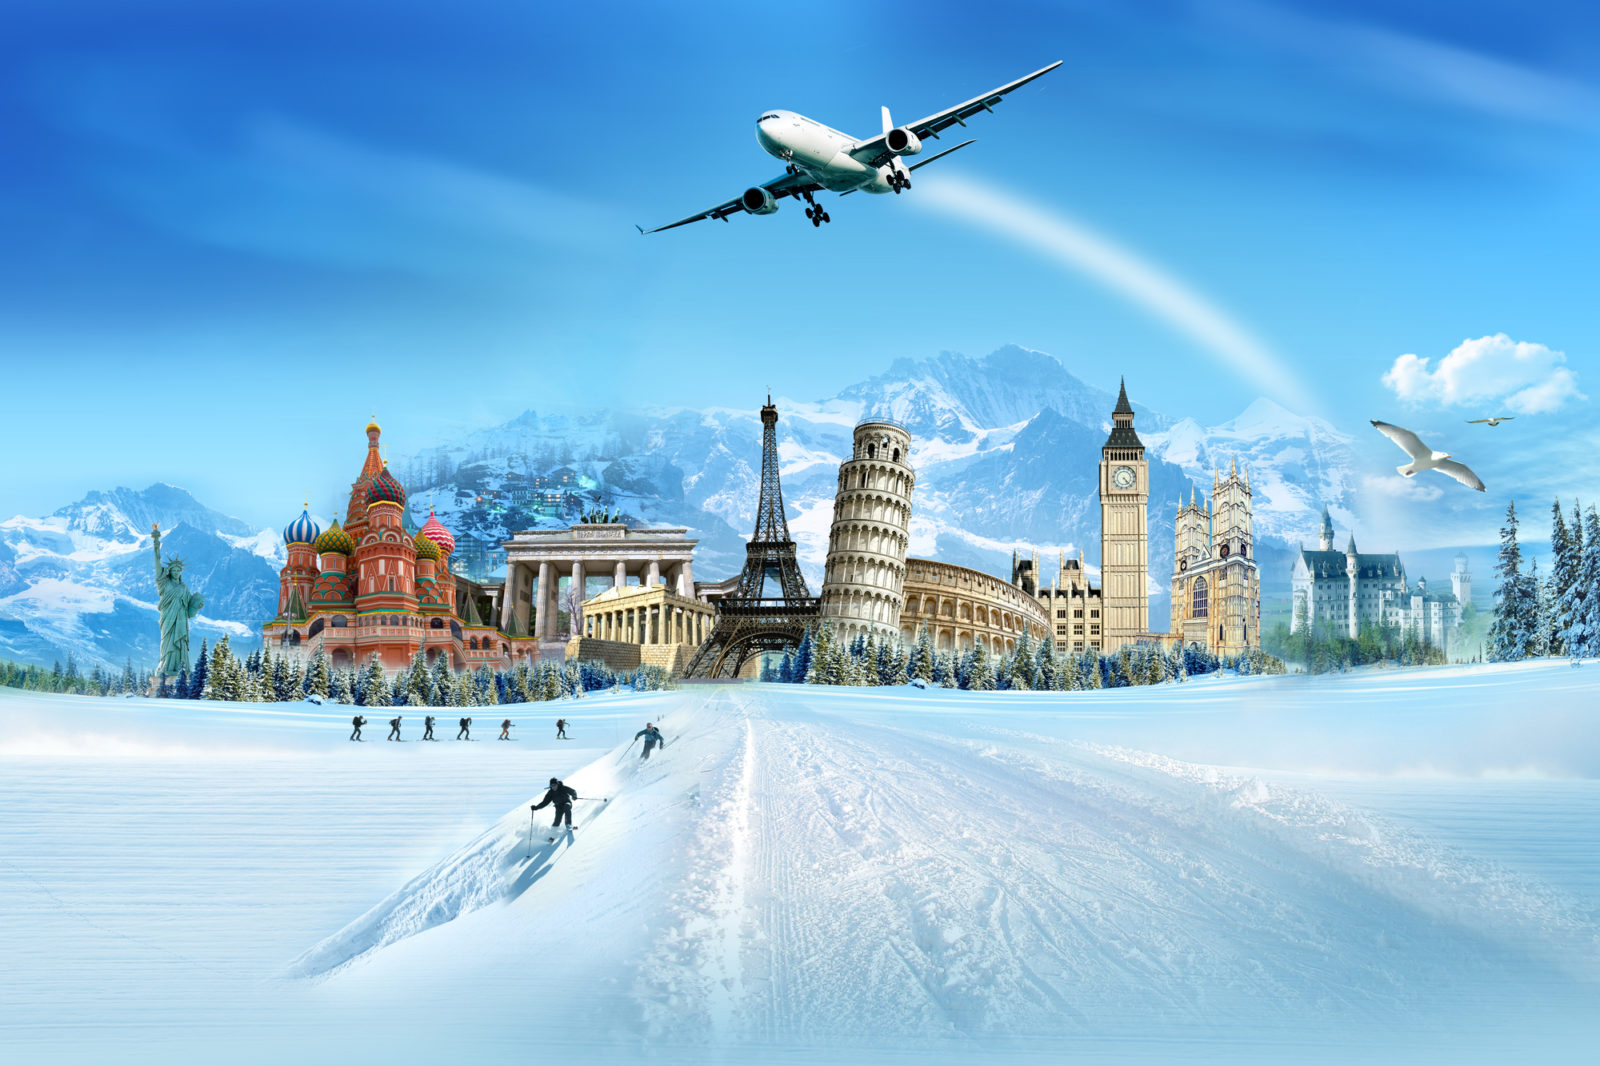 Travel the World themes for events